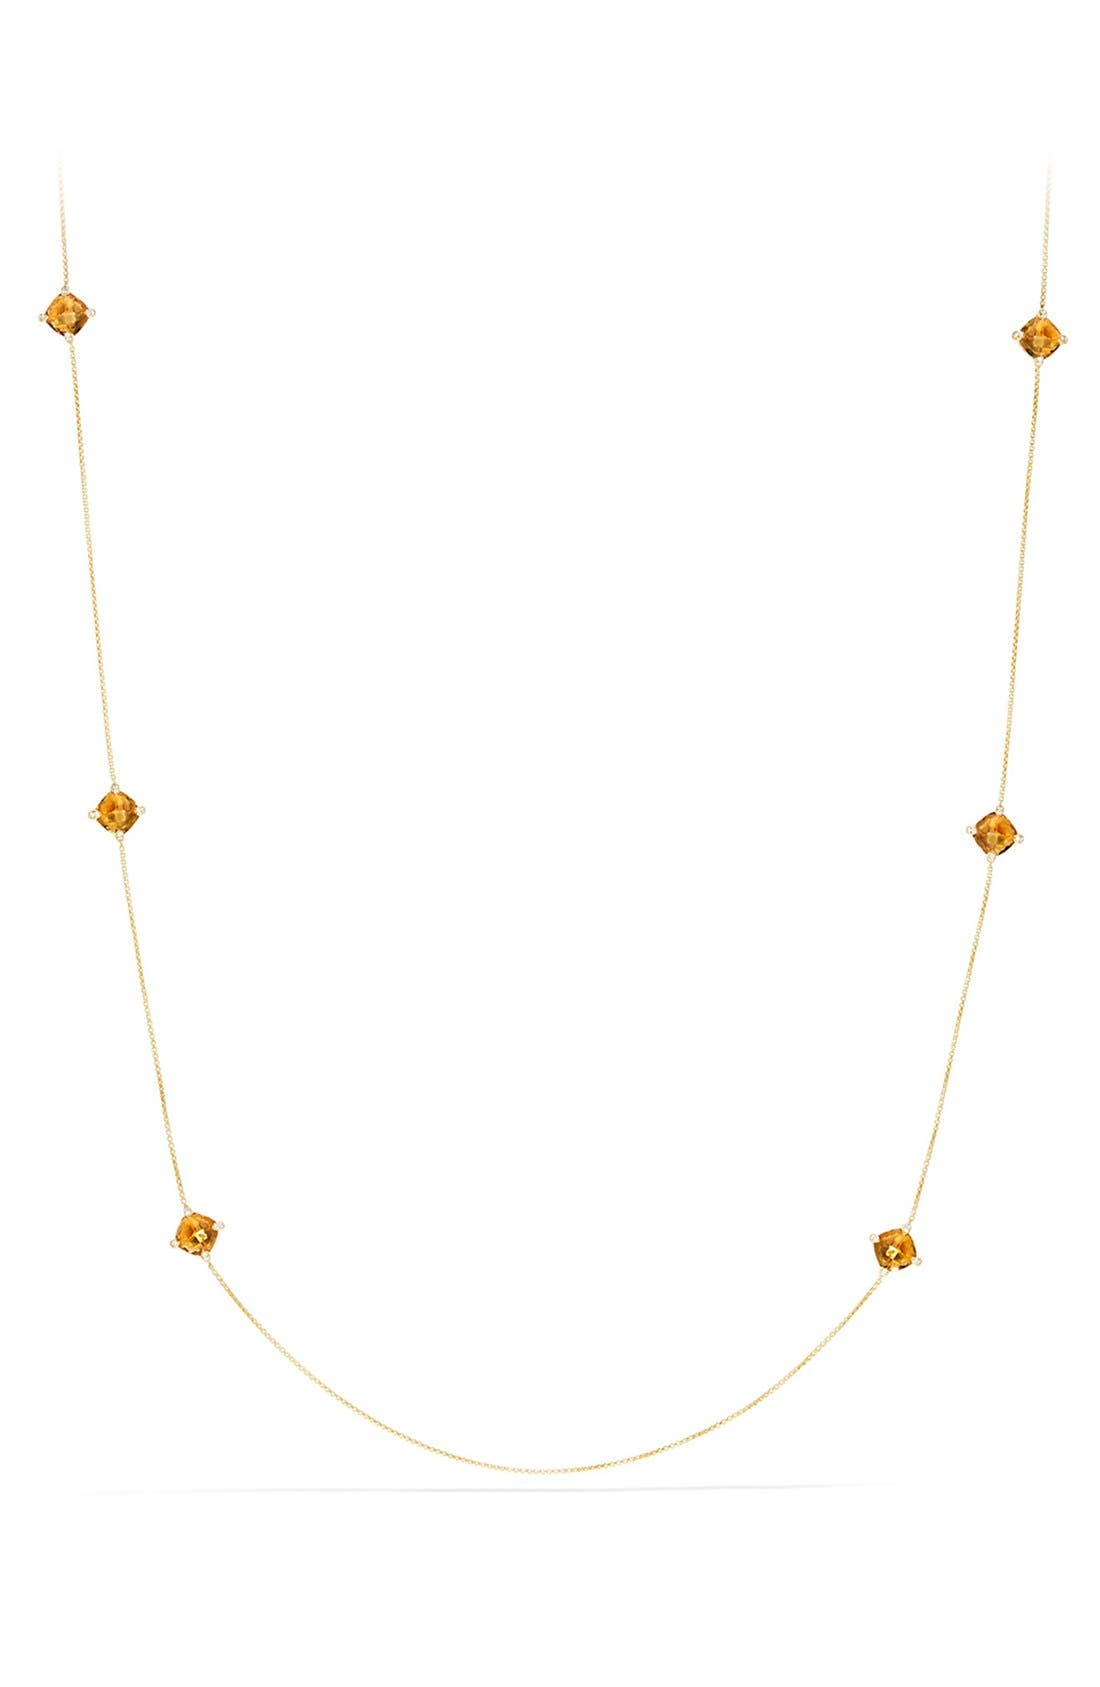 'Châtelaine' Long Semiprecious Stone Necklace with Diamonds,                             Main thumbnail 1, color,                             Citrine